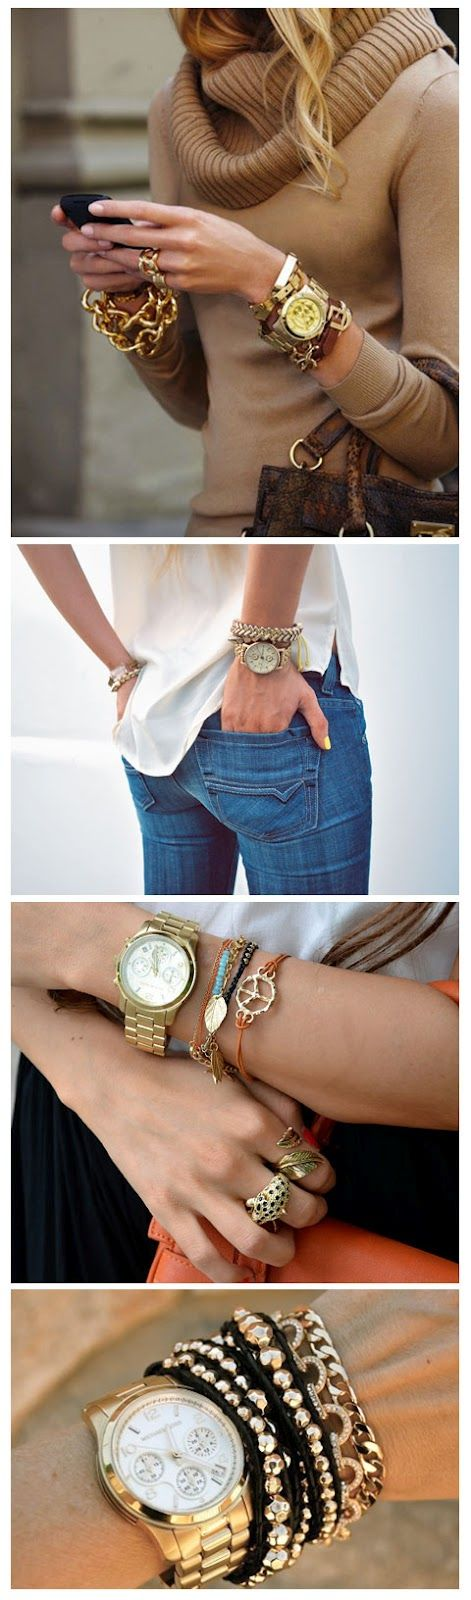 Accessories: Arm Candy, Watches Bracelets, Gold Bracelets, Big Watches, Gold Watches, Watches Arm, Gold Jewelry, Gold Accessories, Arm Parties